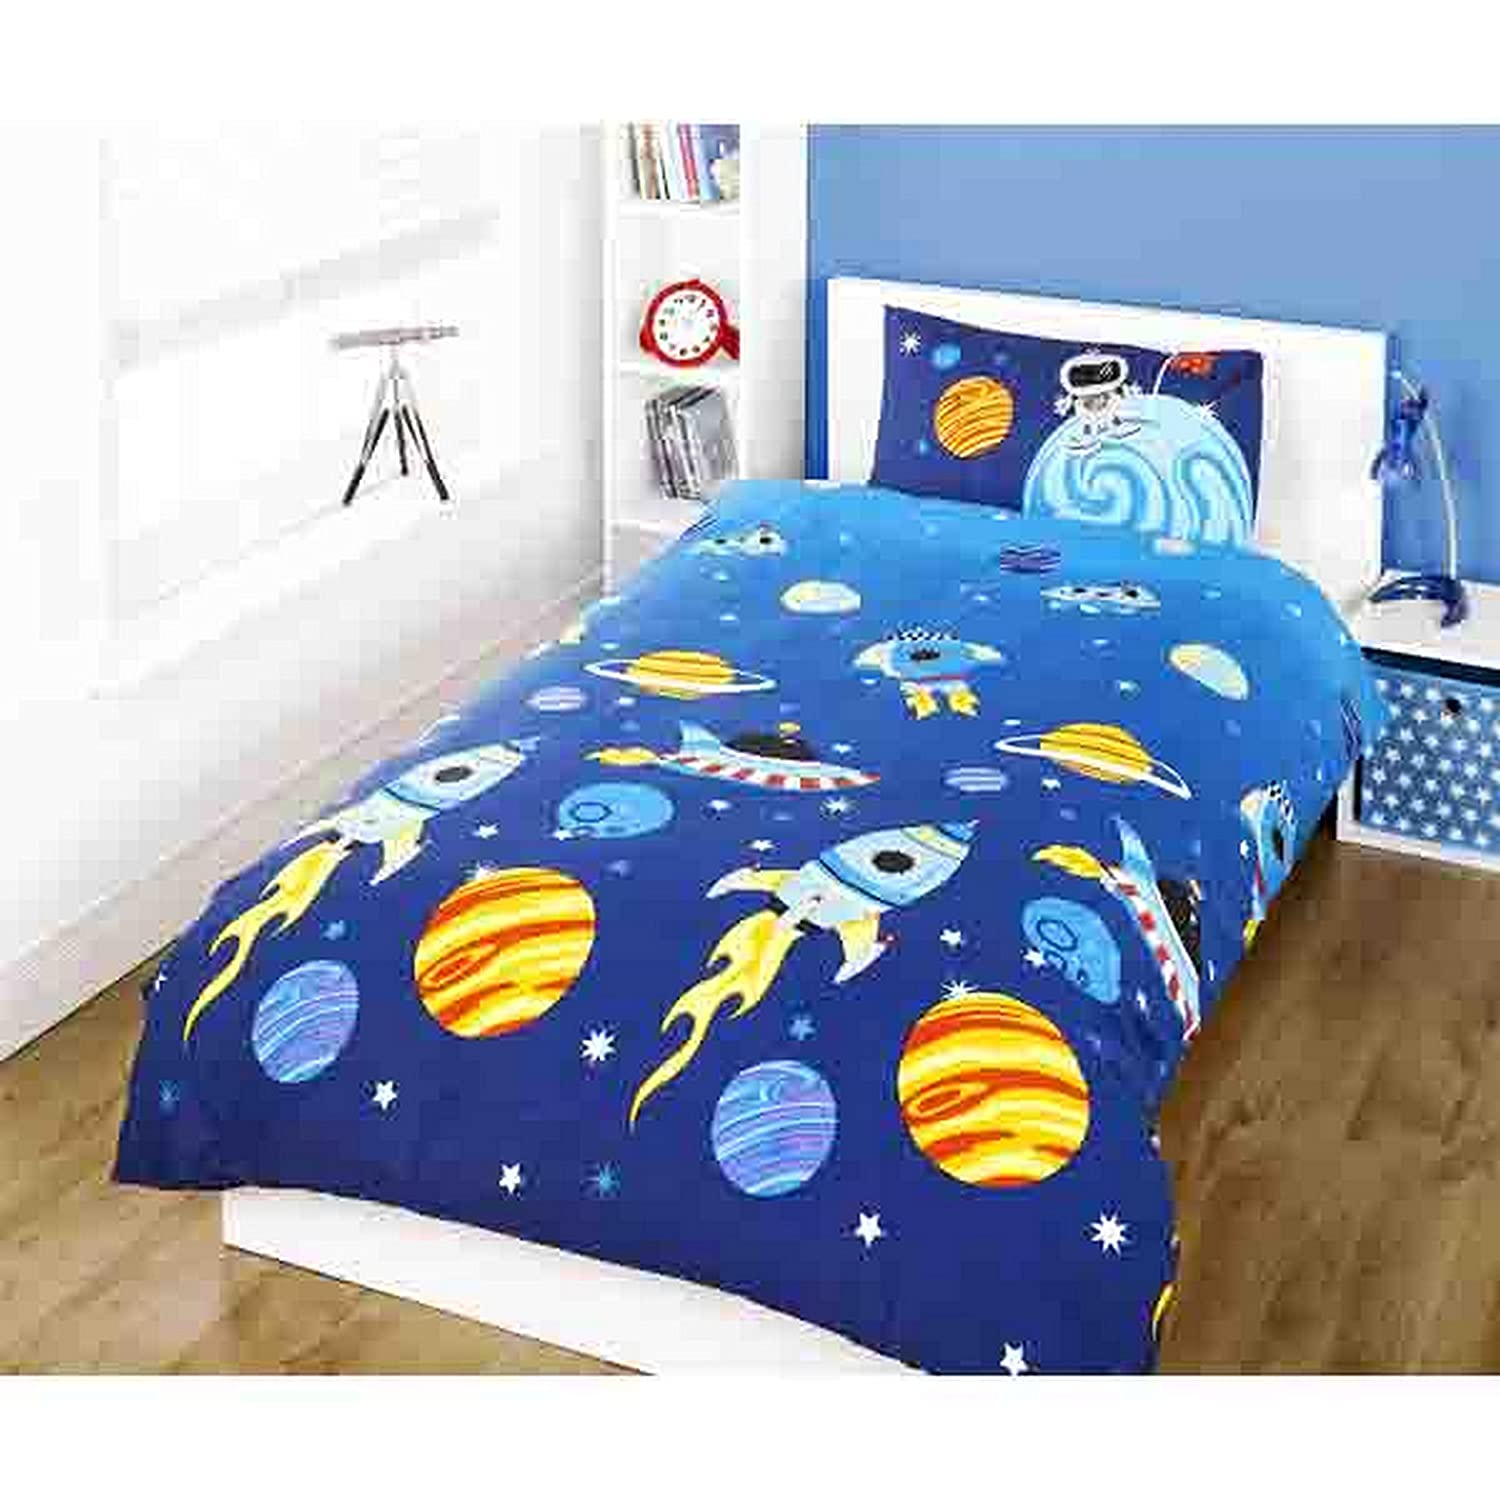 toddler bedding solar system - photo #25